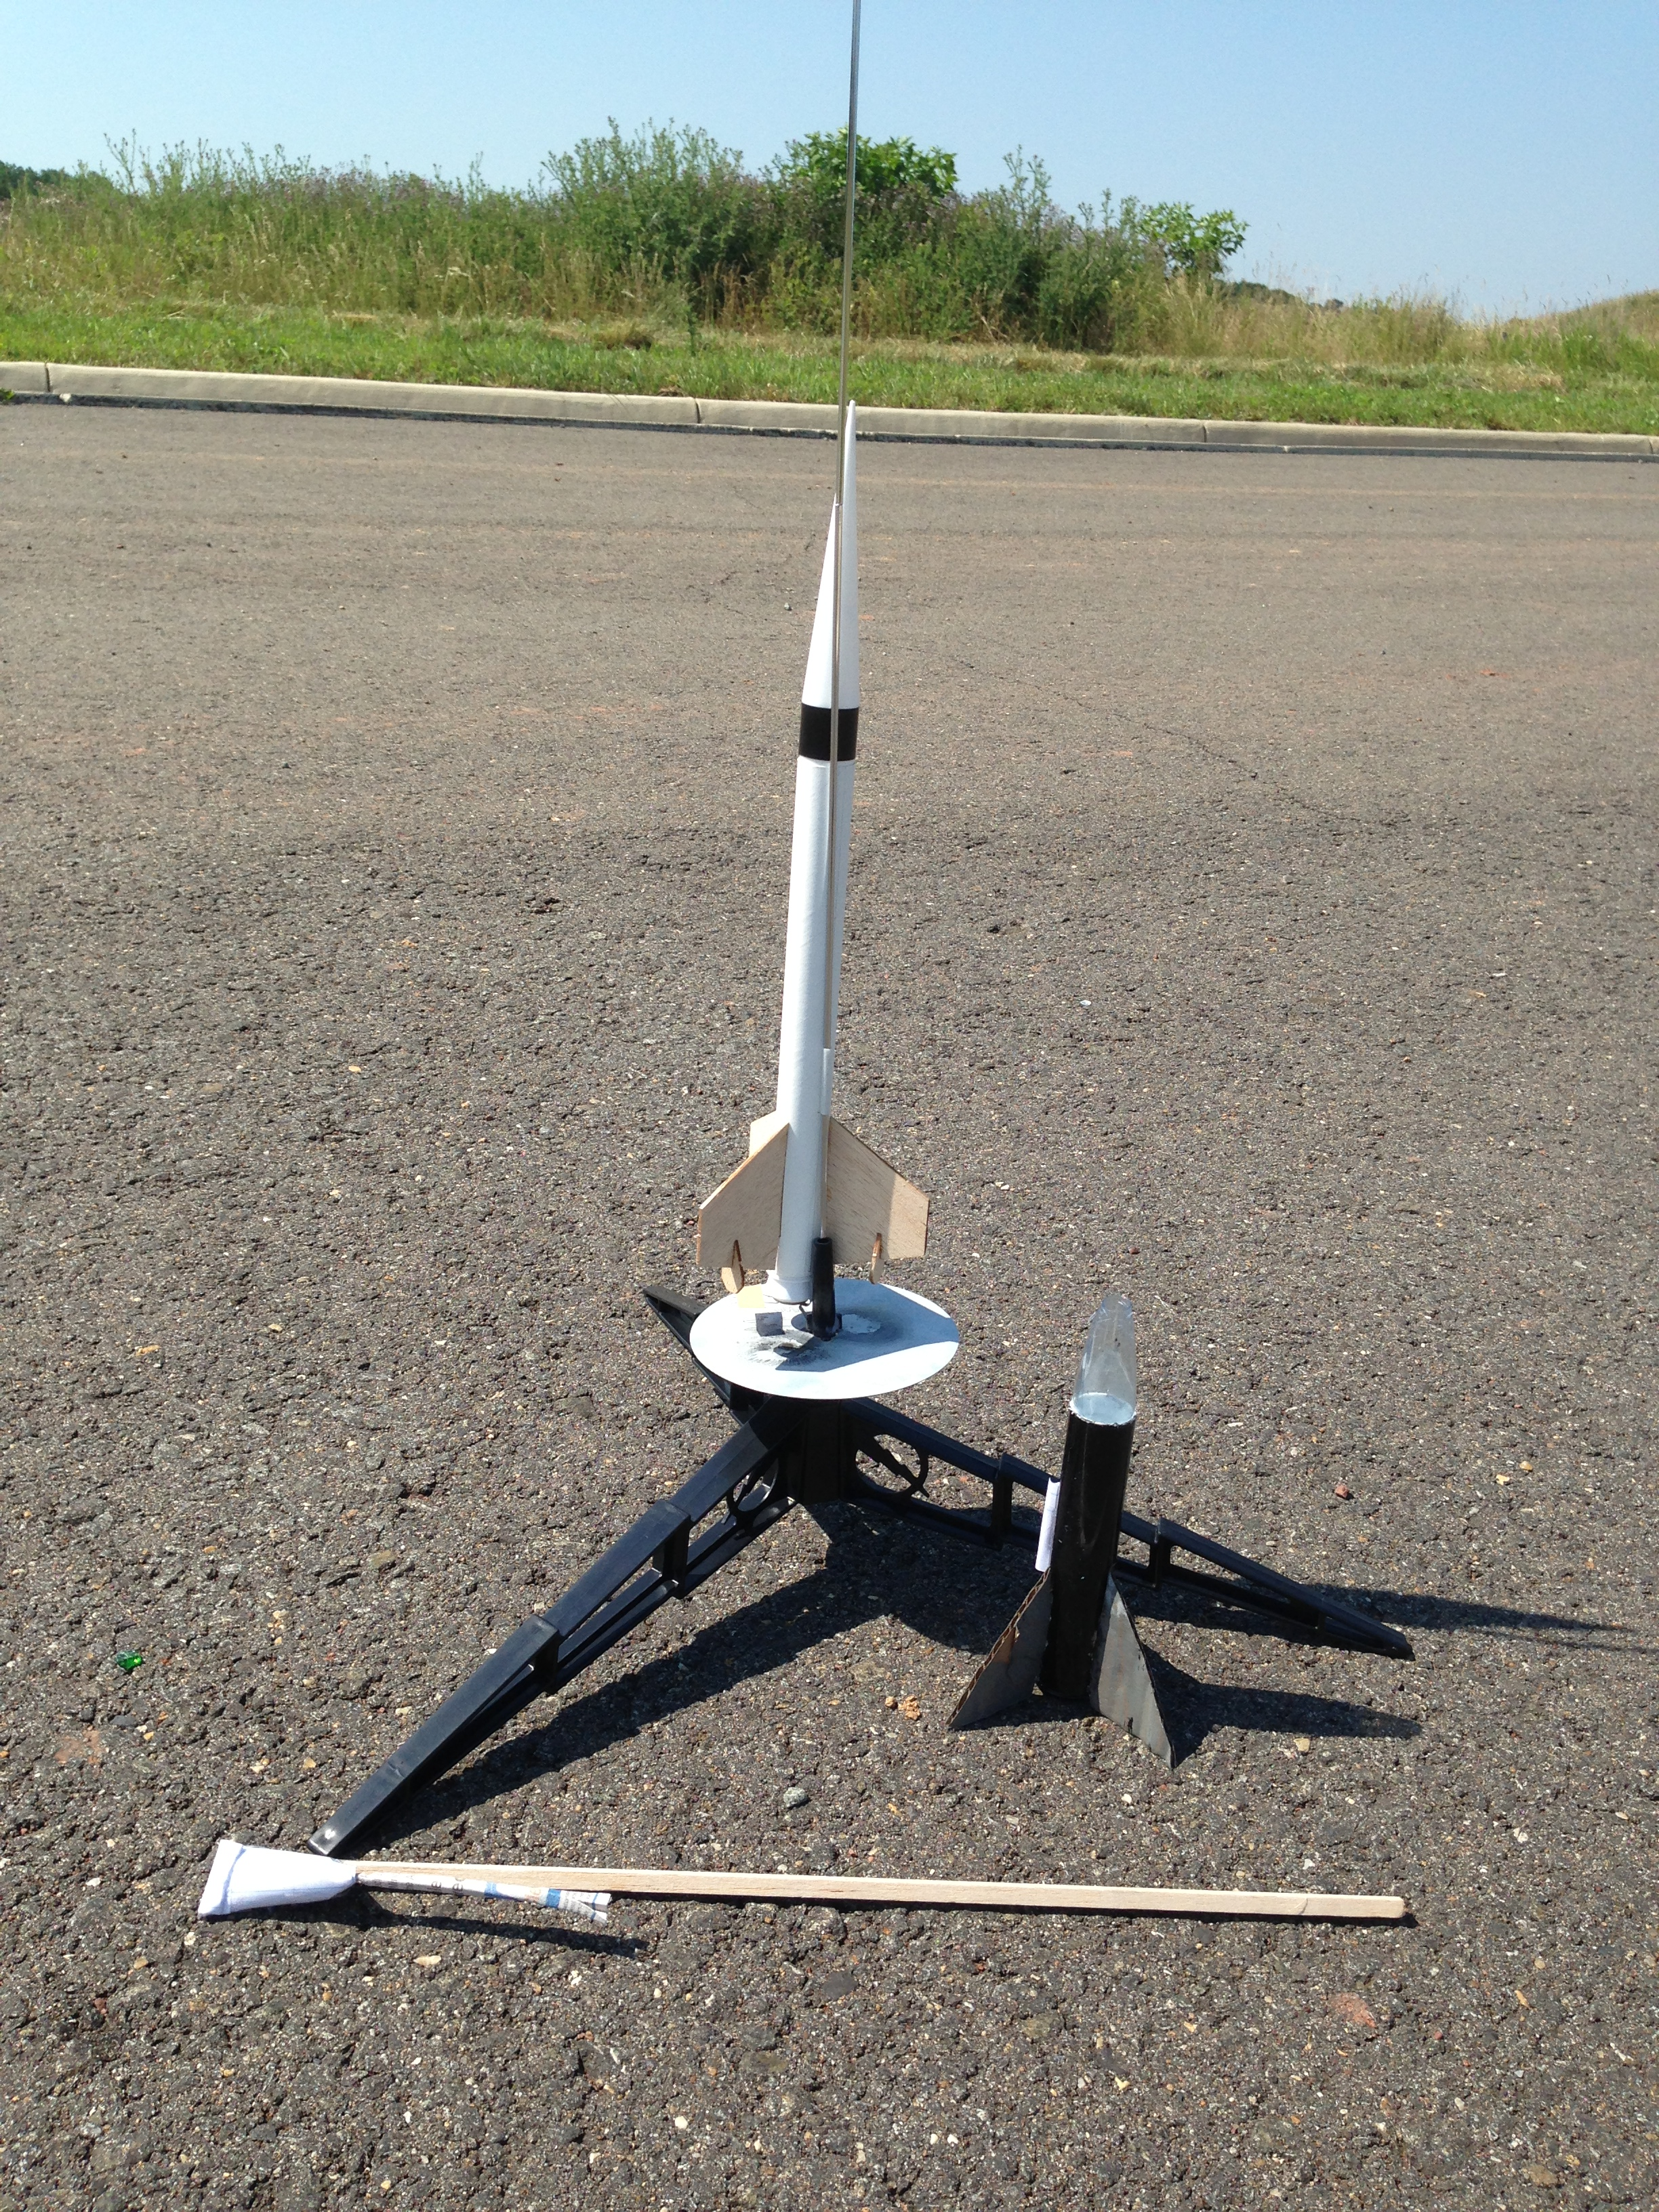 Homemade rocket with rocket fuel and engine